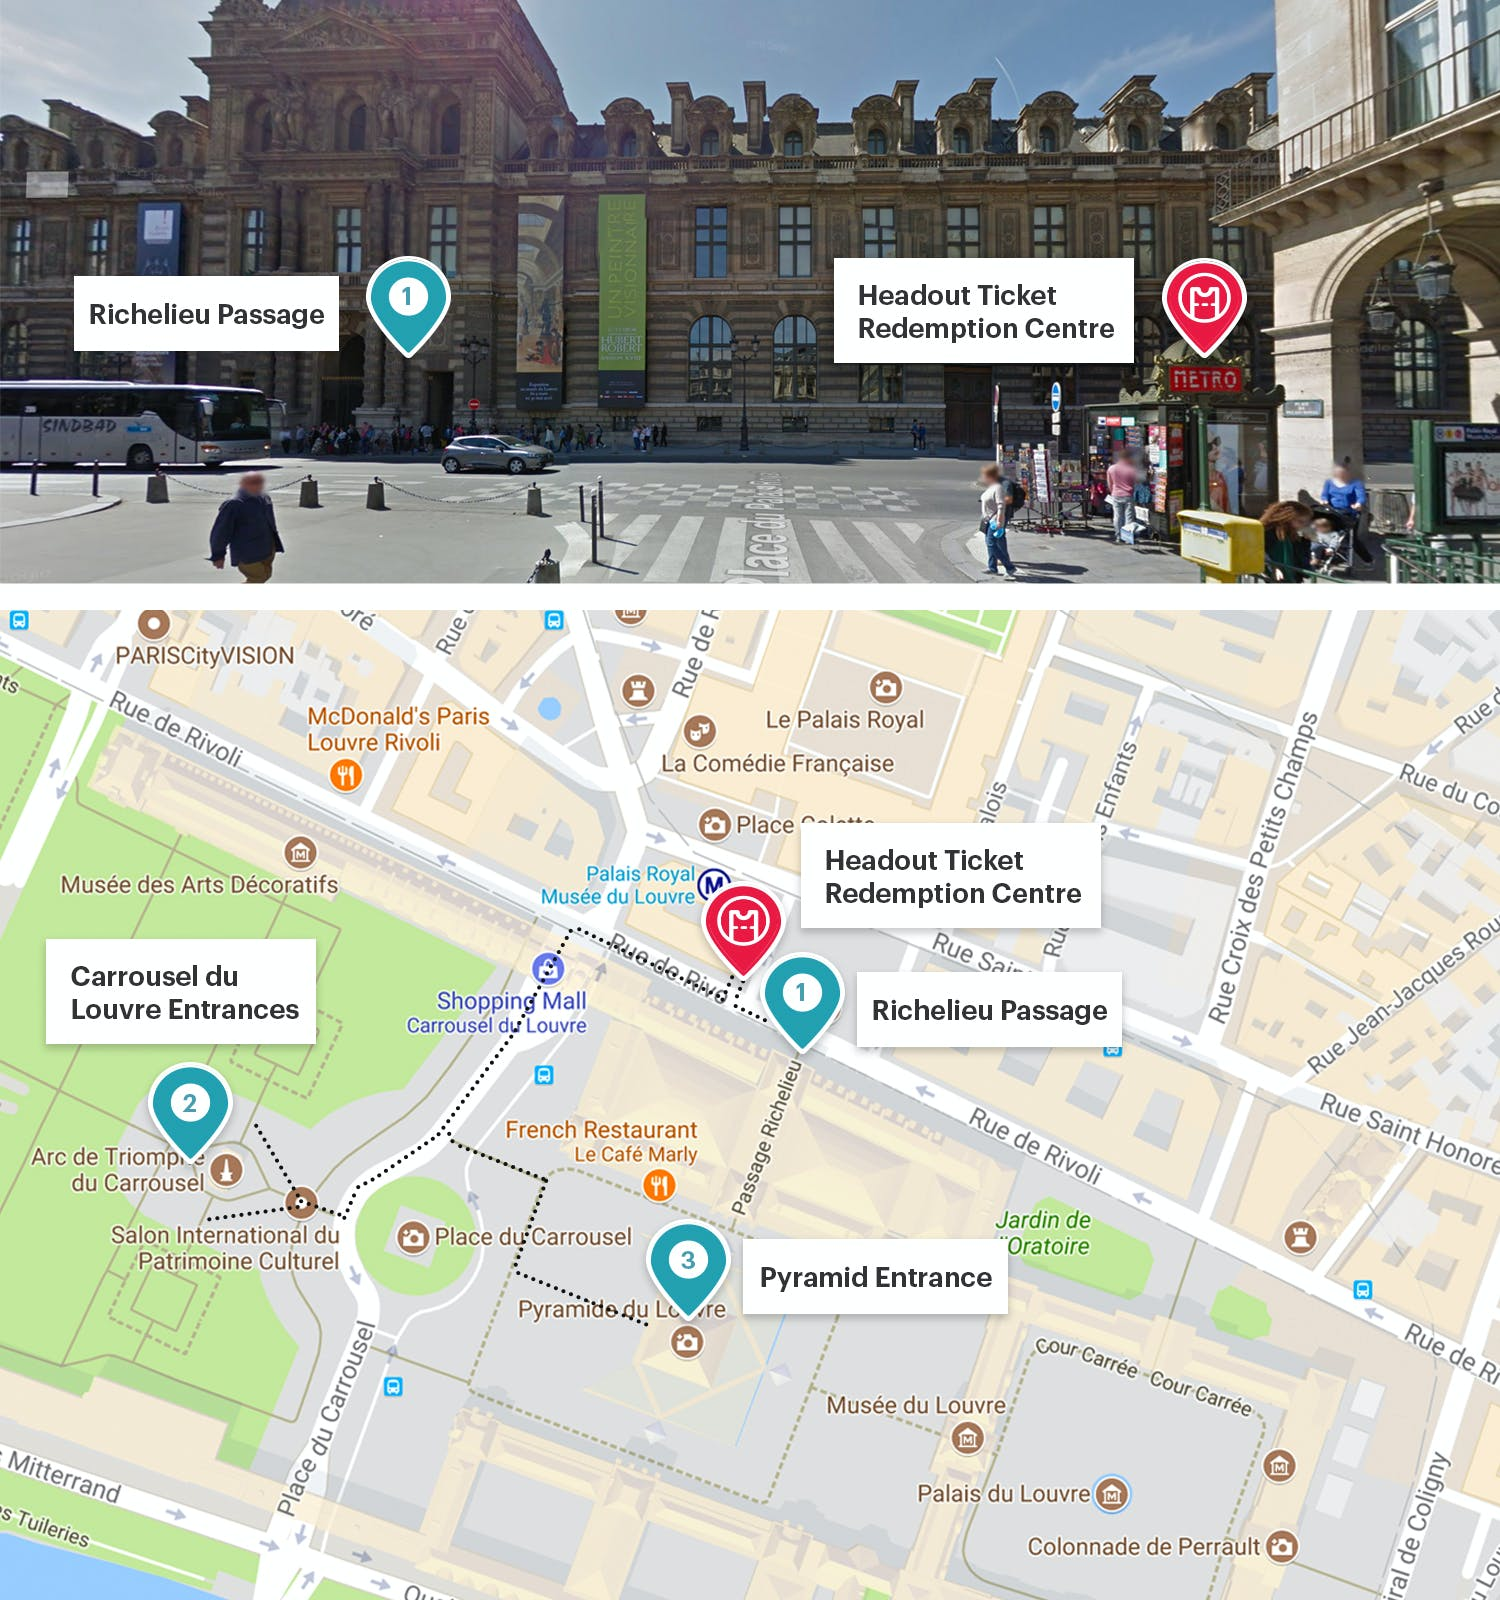 louvre museum priority access with entry time headout lowest price guarantee